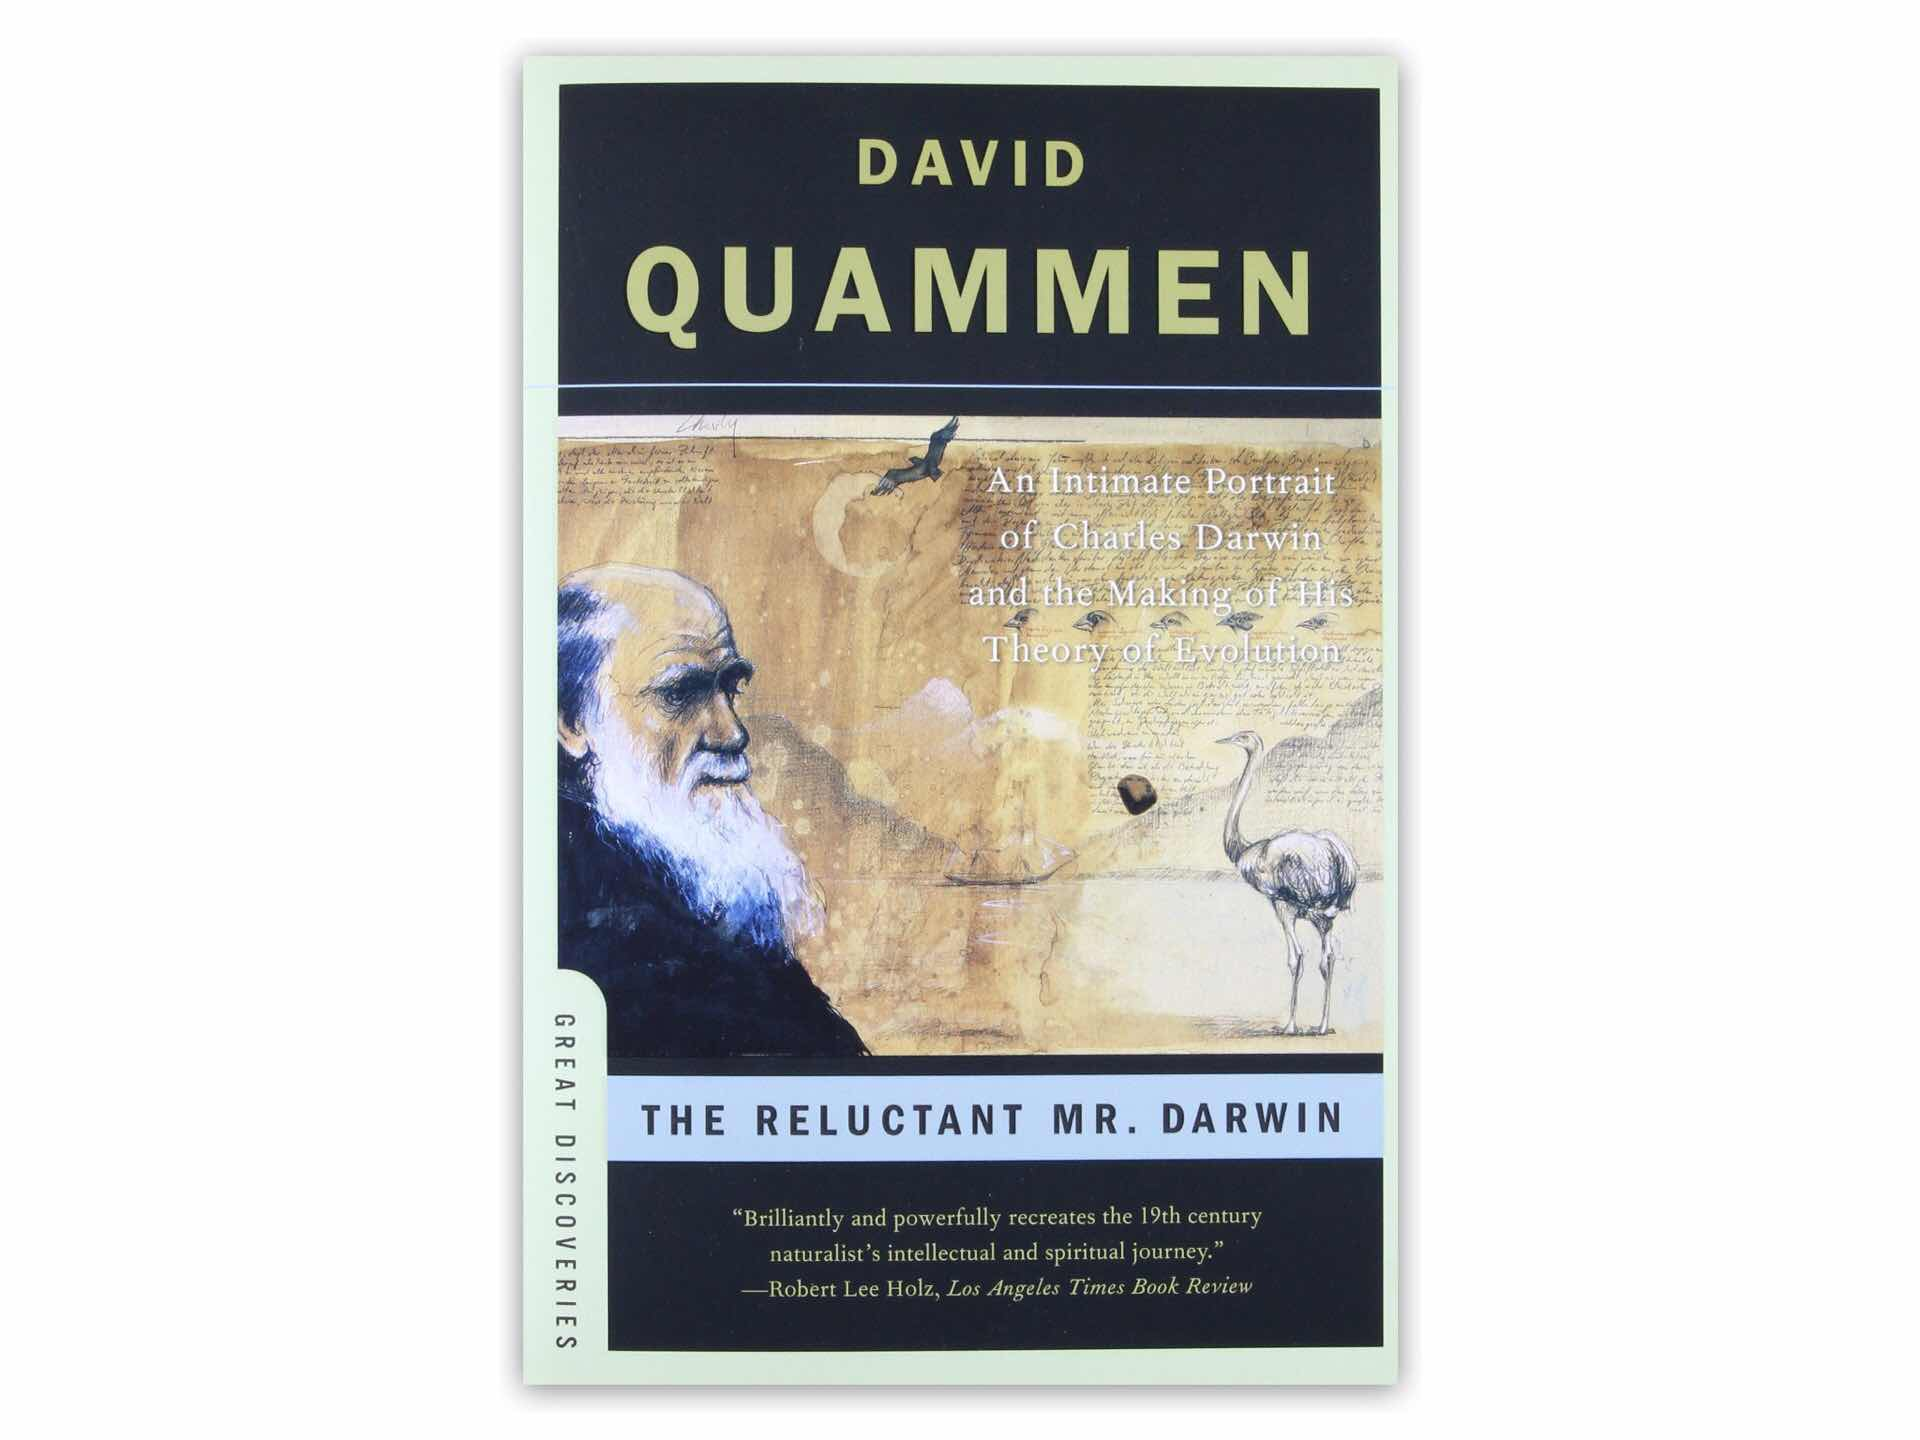 the-reluctant-mr-darwin-by-david-quammen